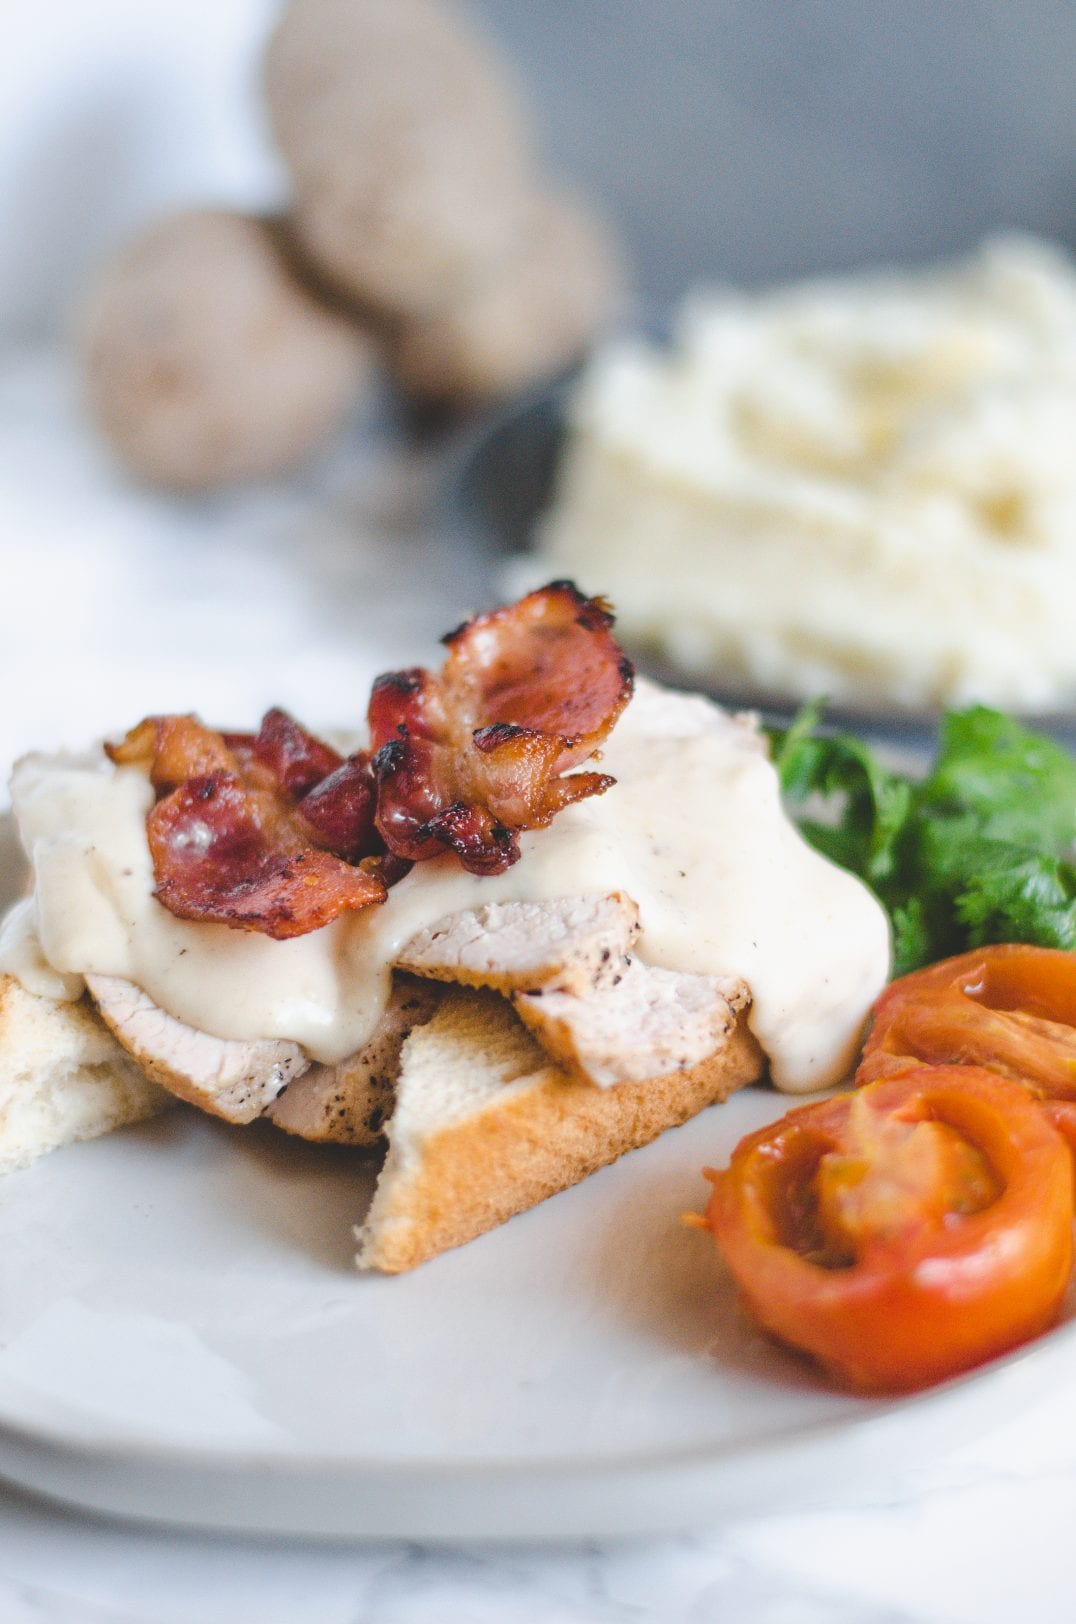 Derby Meal for Two — Garlic Whipped Potatoes and Kentucky Inspired Hot Brown